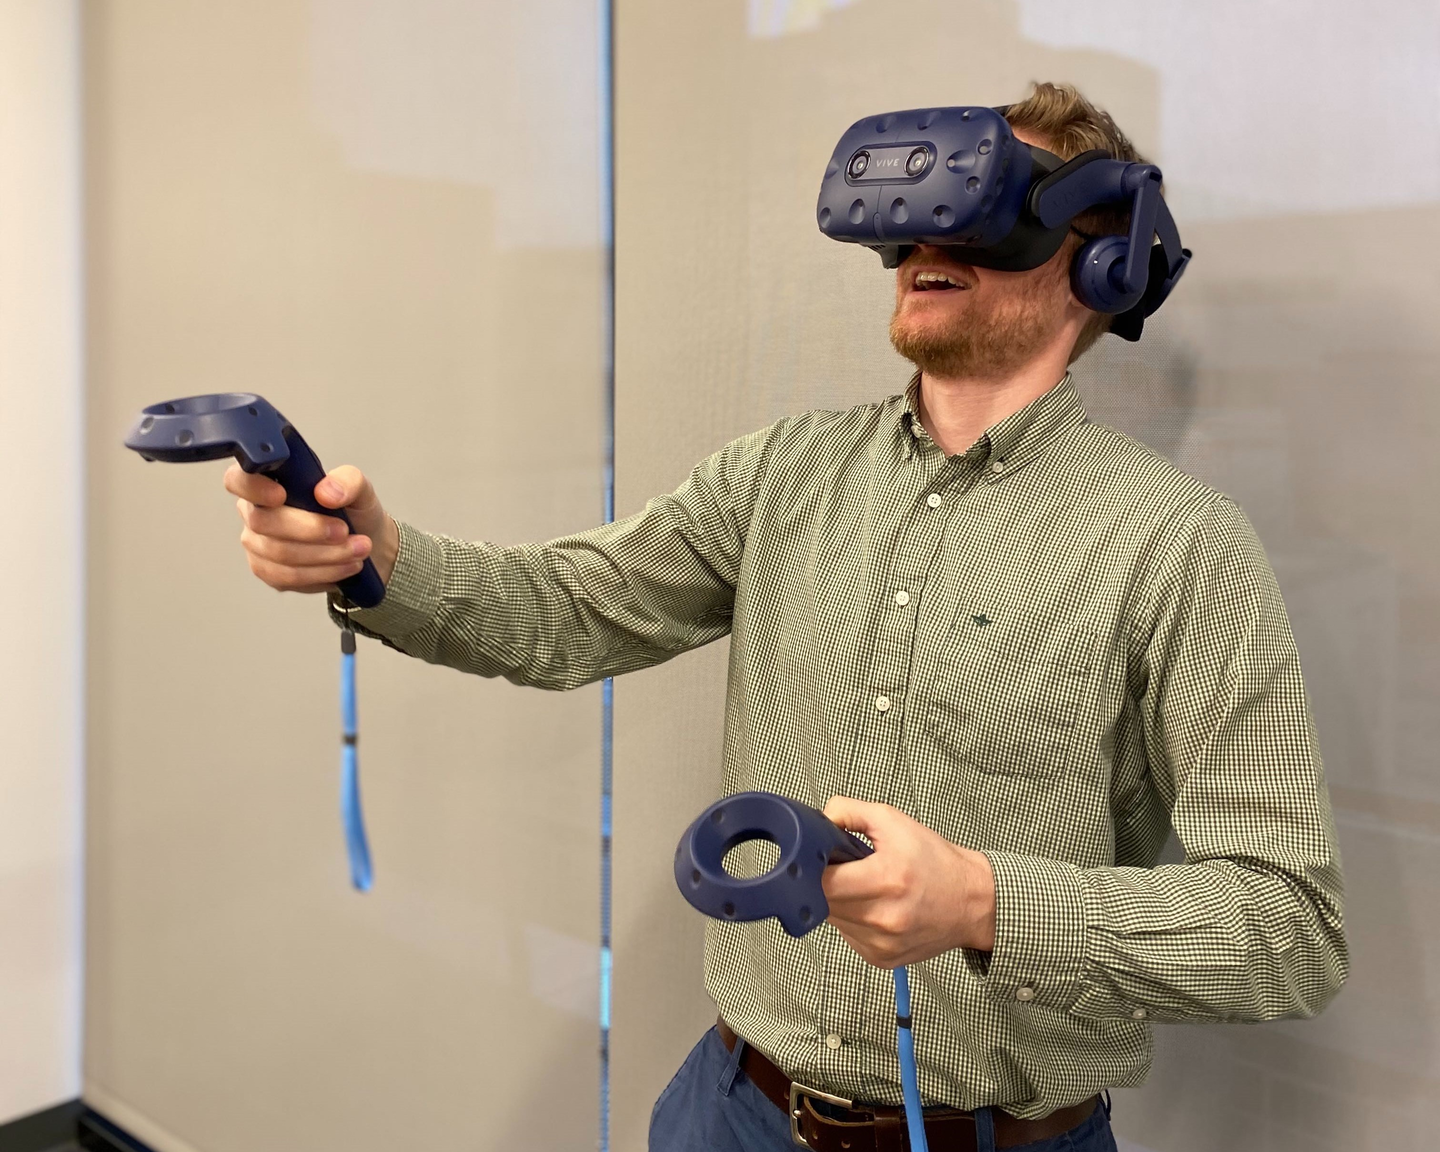 A setup of a computer, hand devices, a headset, and a couple of sensors, can immerse trainees in an environment to practice.